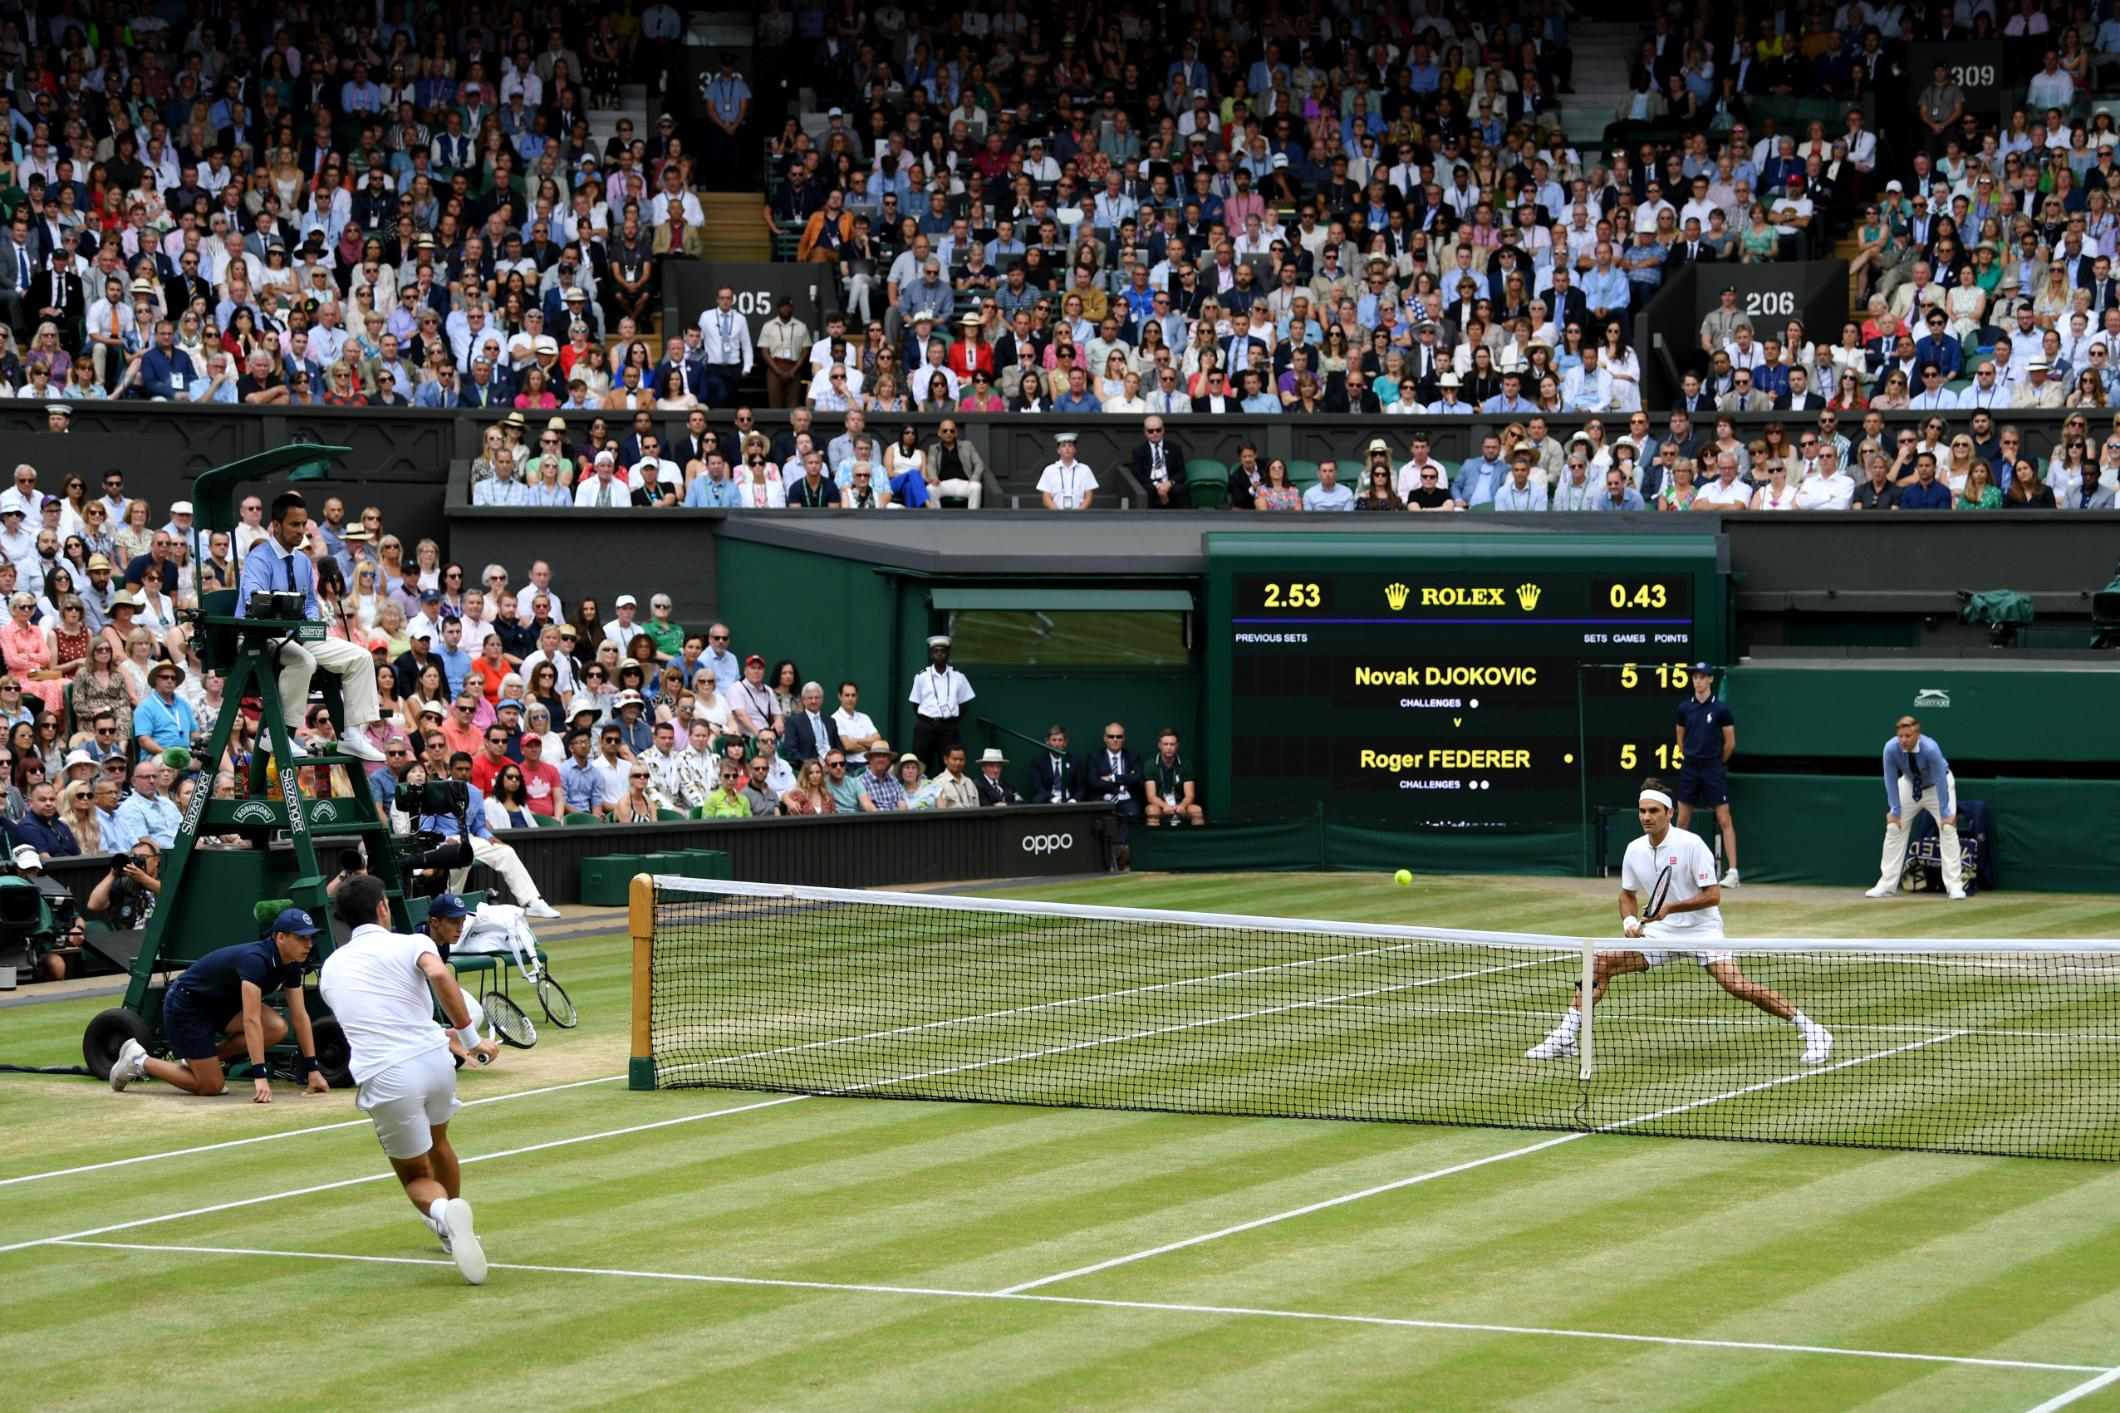 This year's Wimbledon could be canceled with decision to be made next week